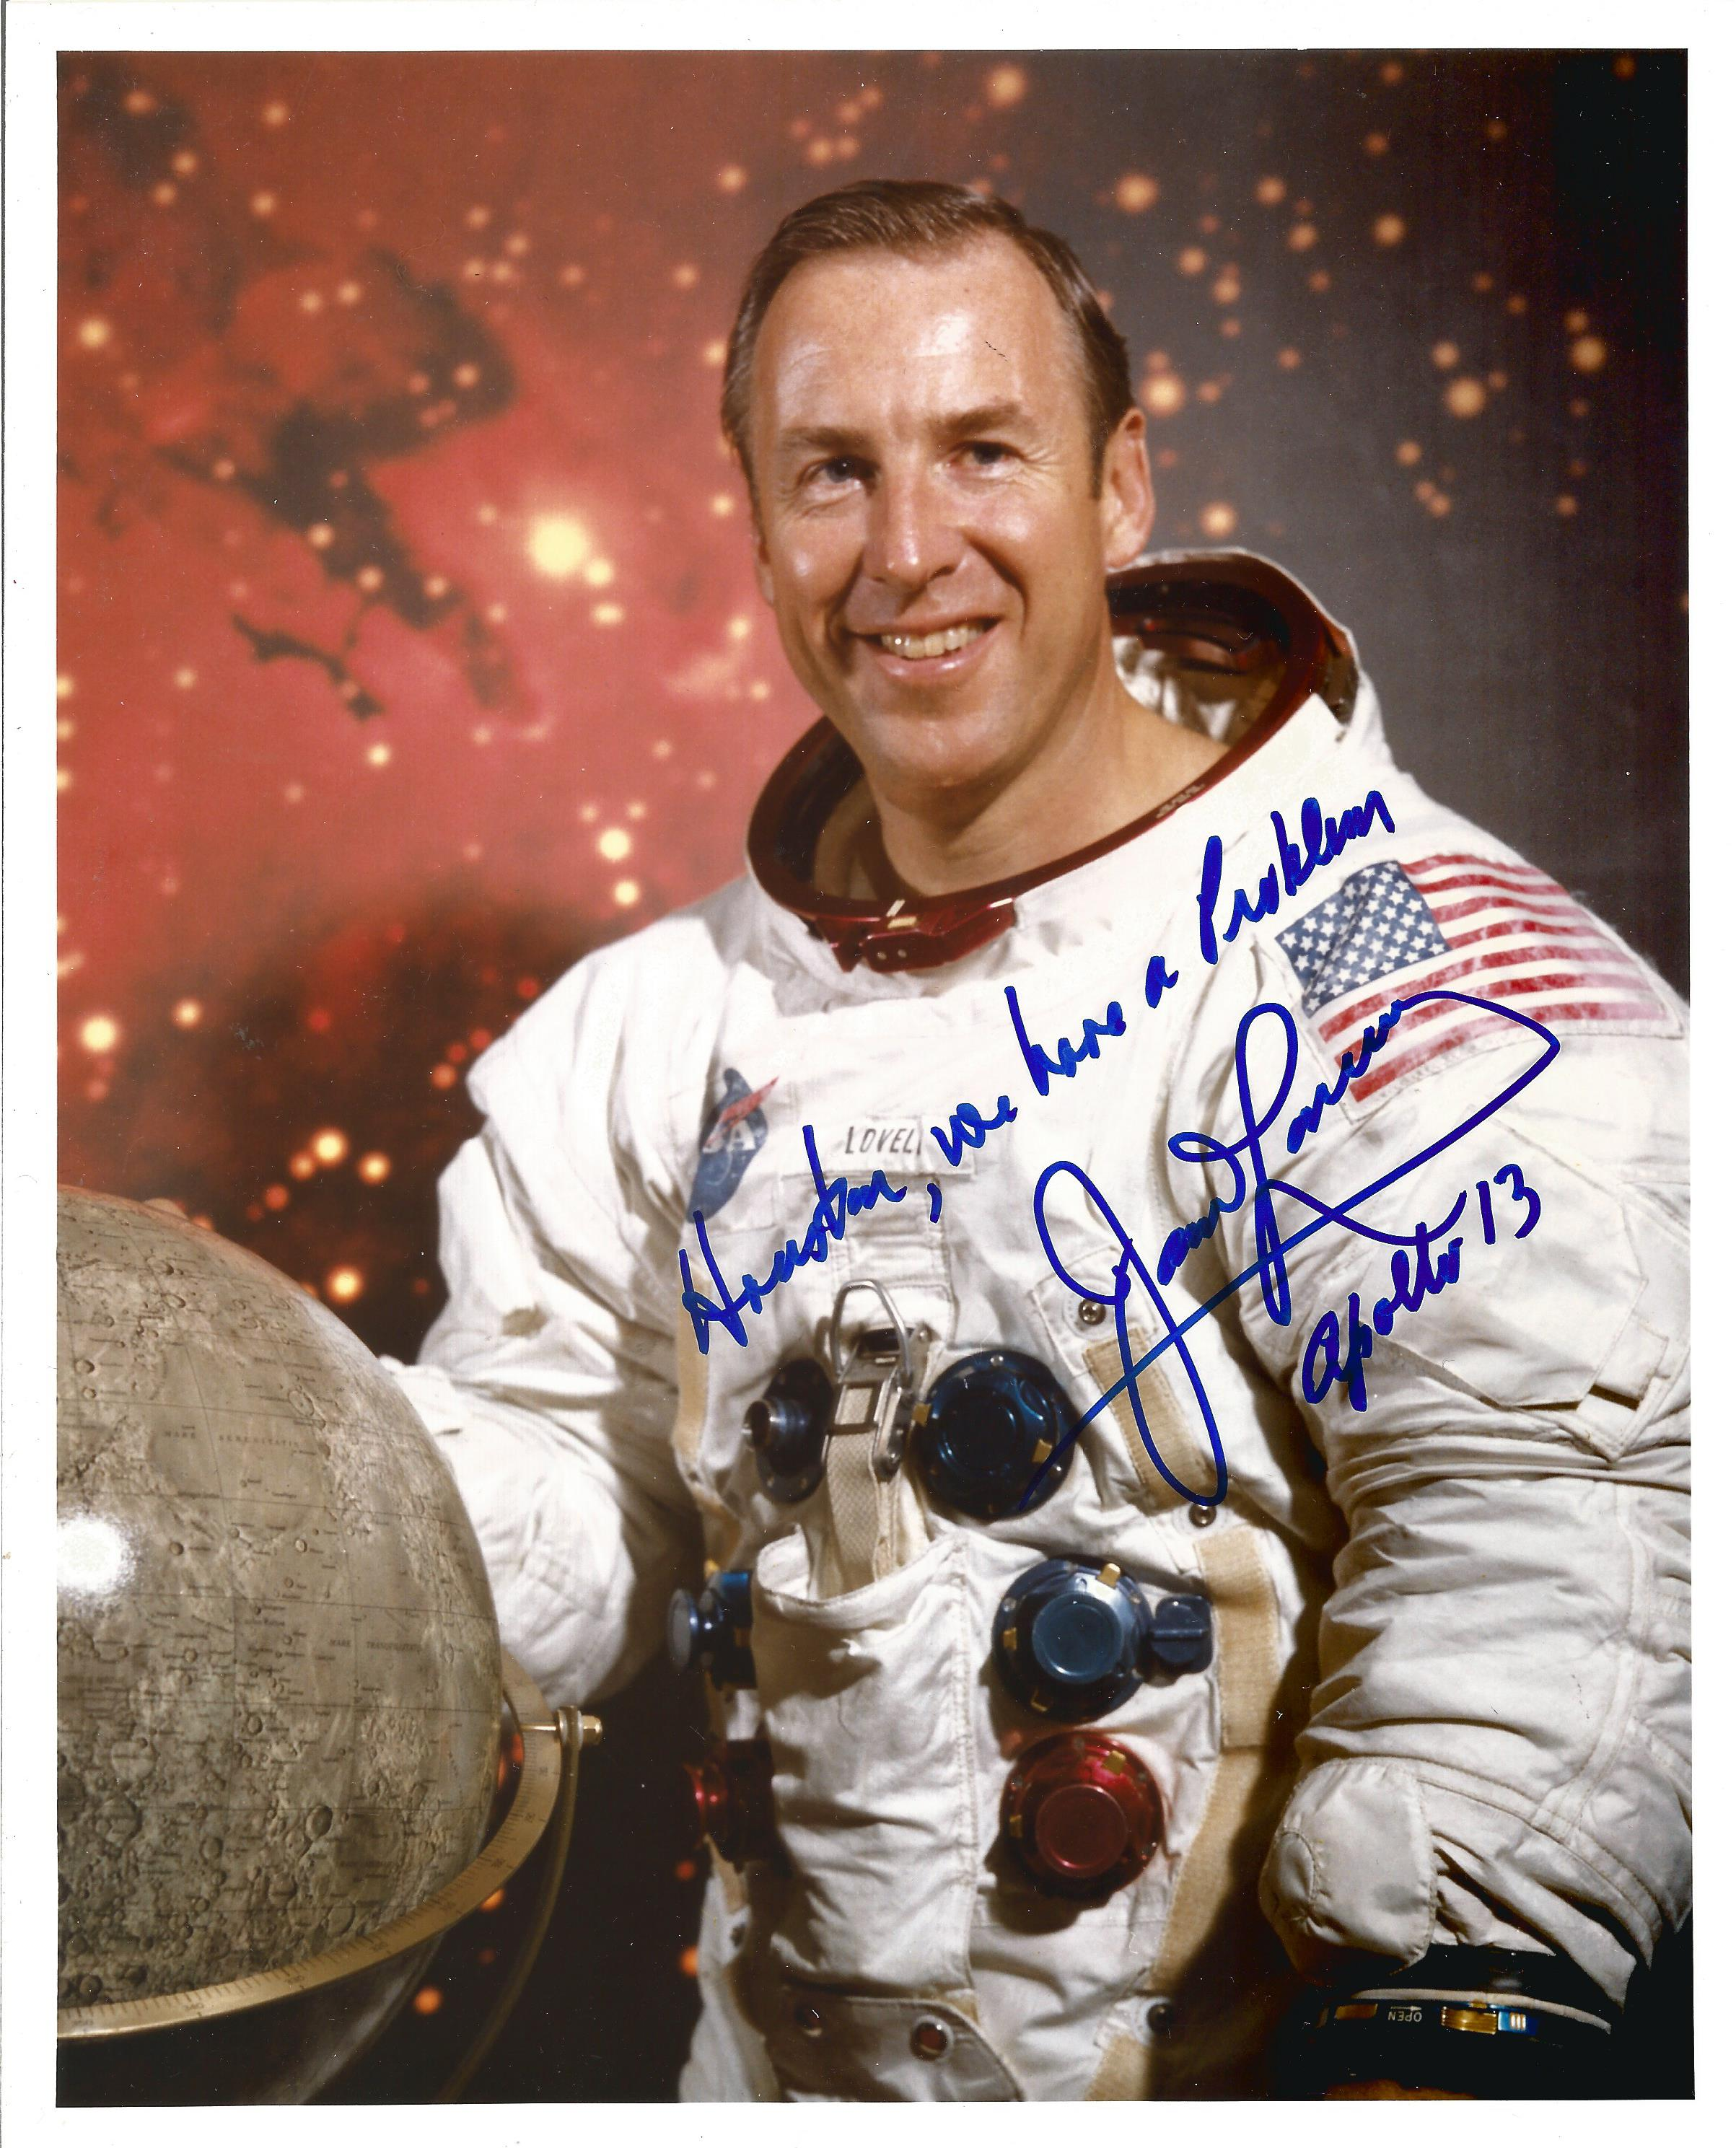 Apollo 13 Astronaut James Lovell signed rare 10 x 8 inch colour White space suit photo with scarce